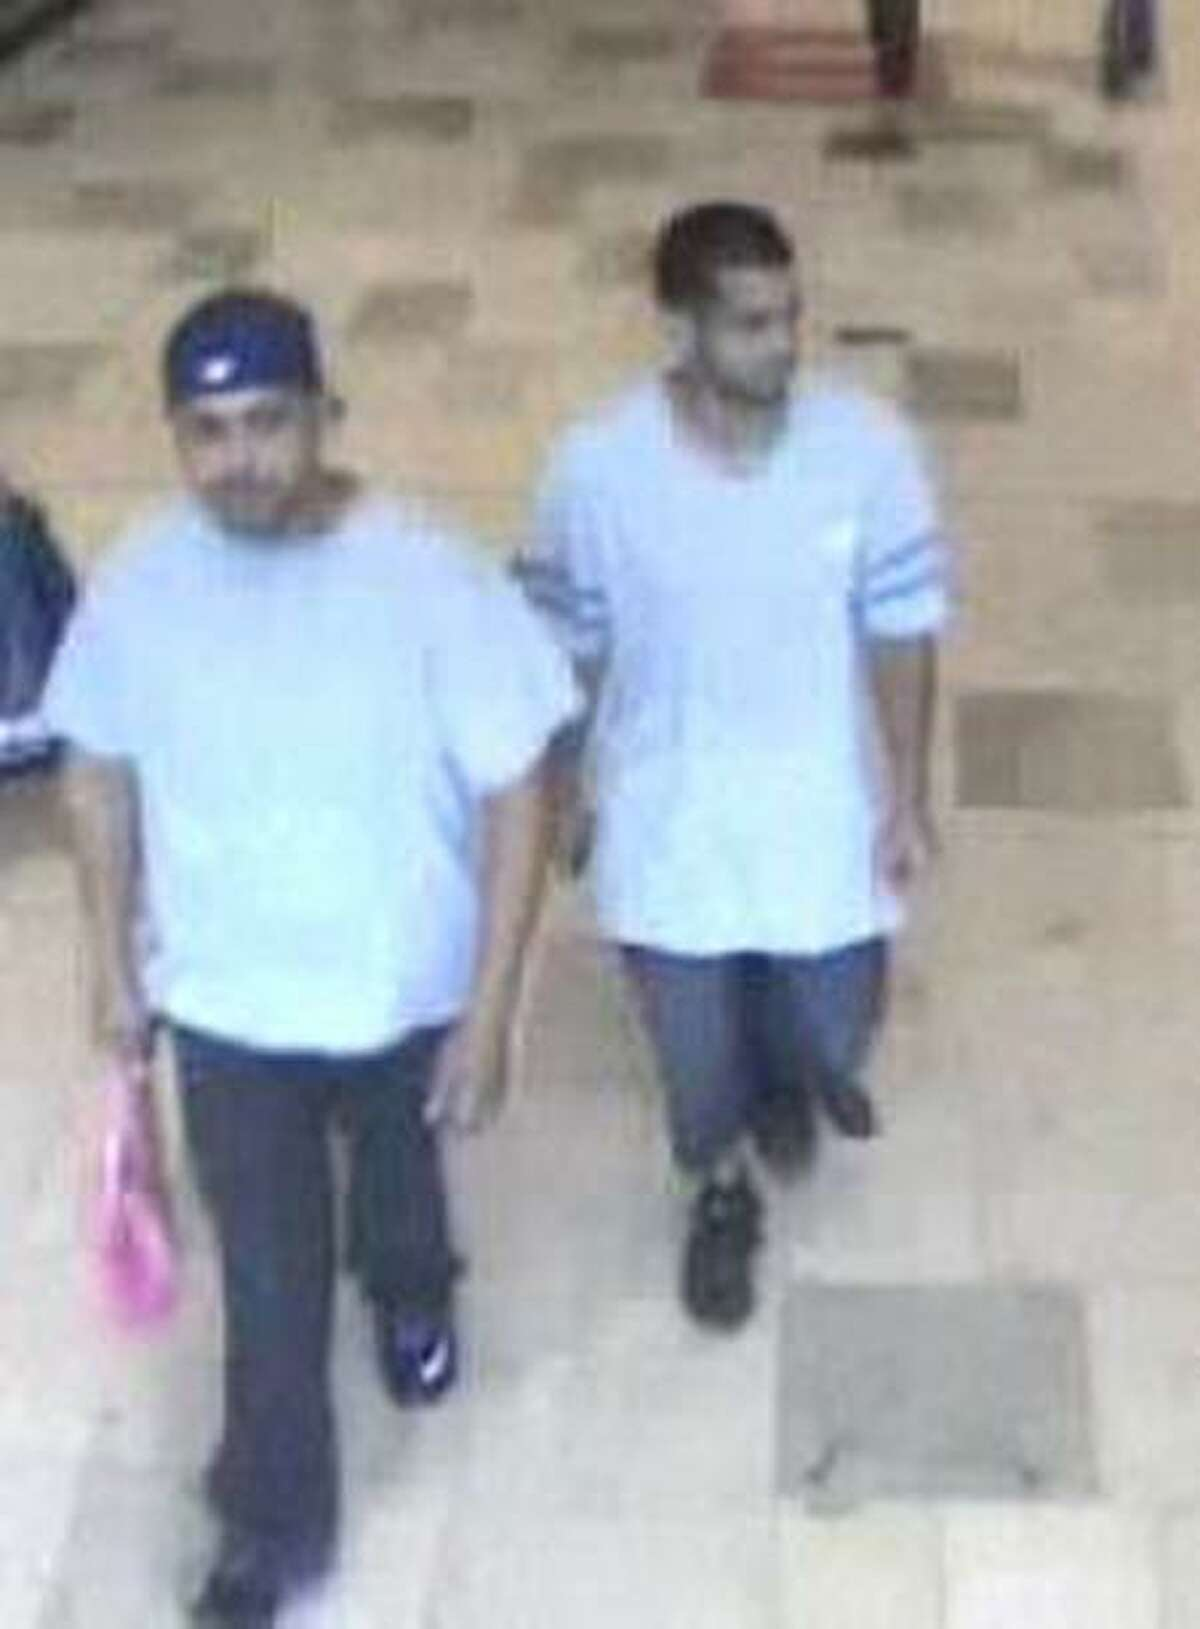 Mall survellance photo shows two suspects in armed robbery attempt.